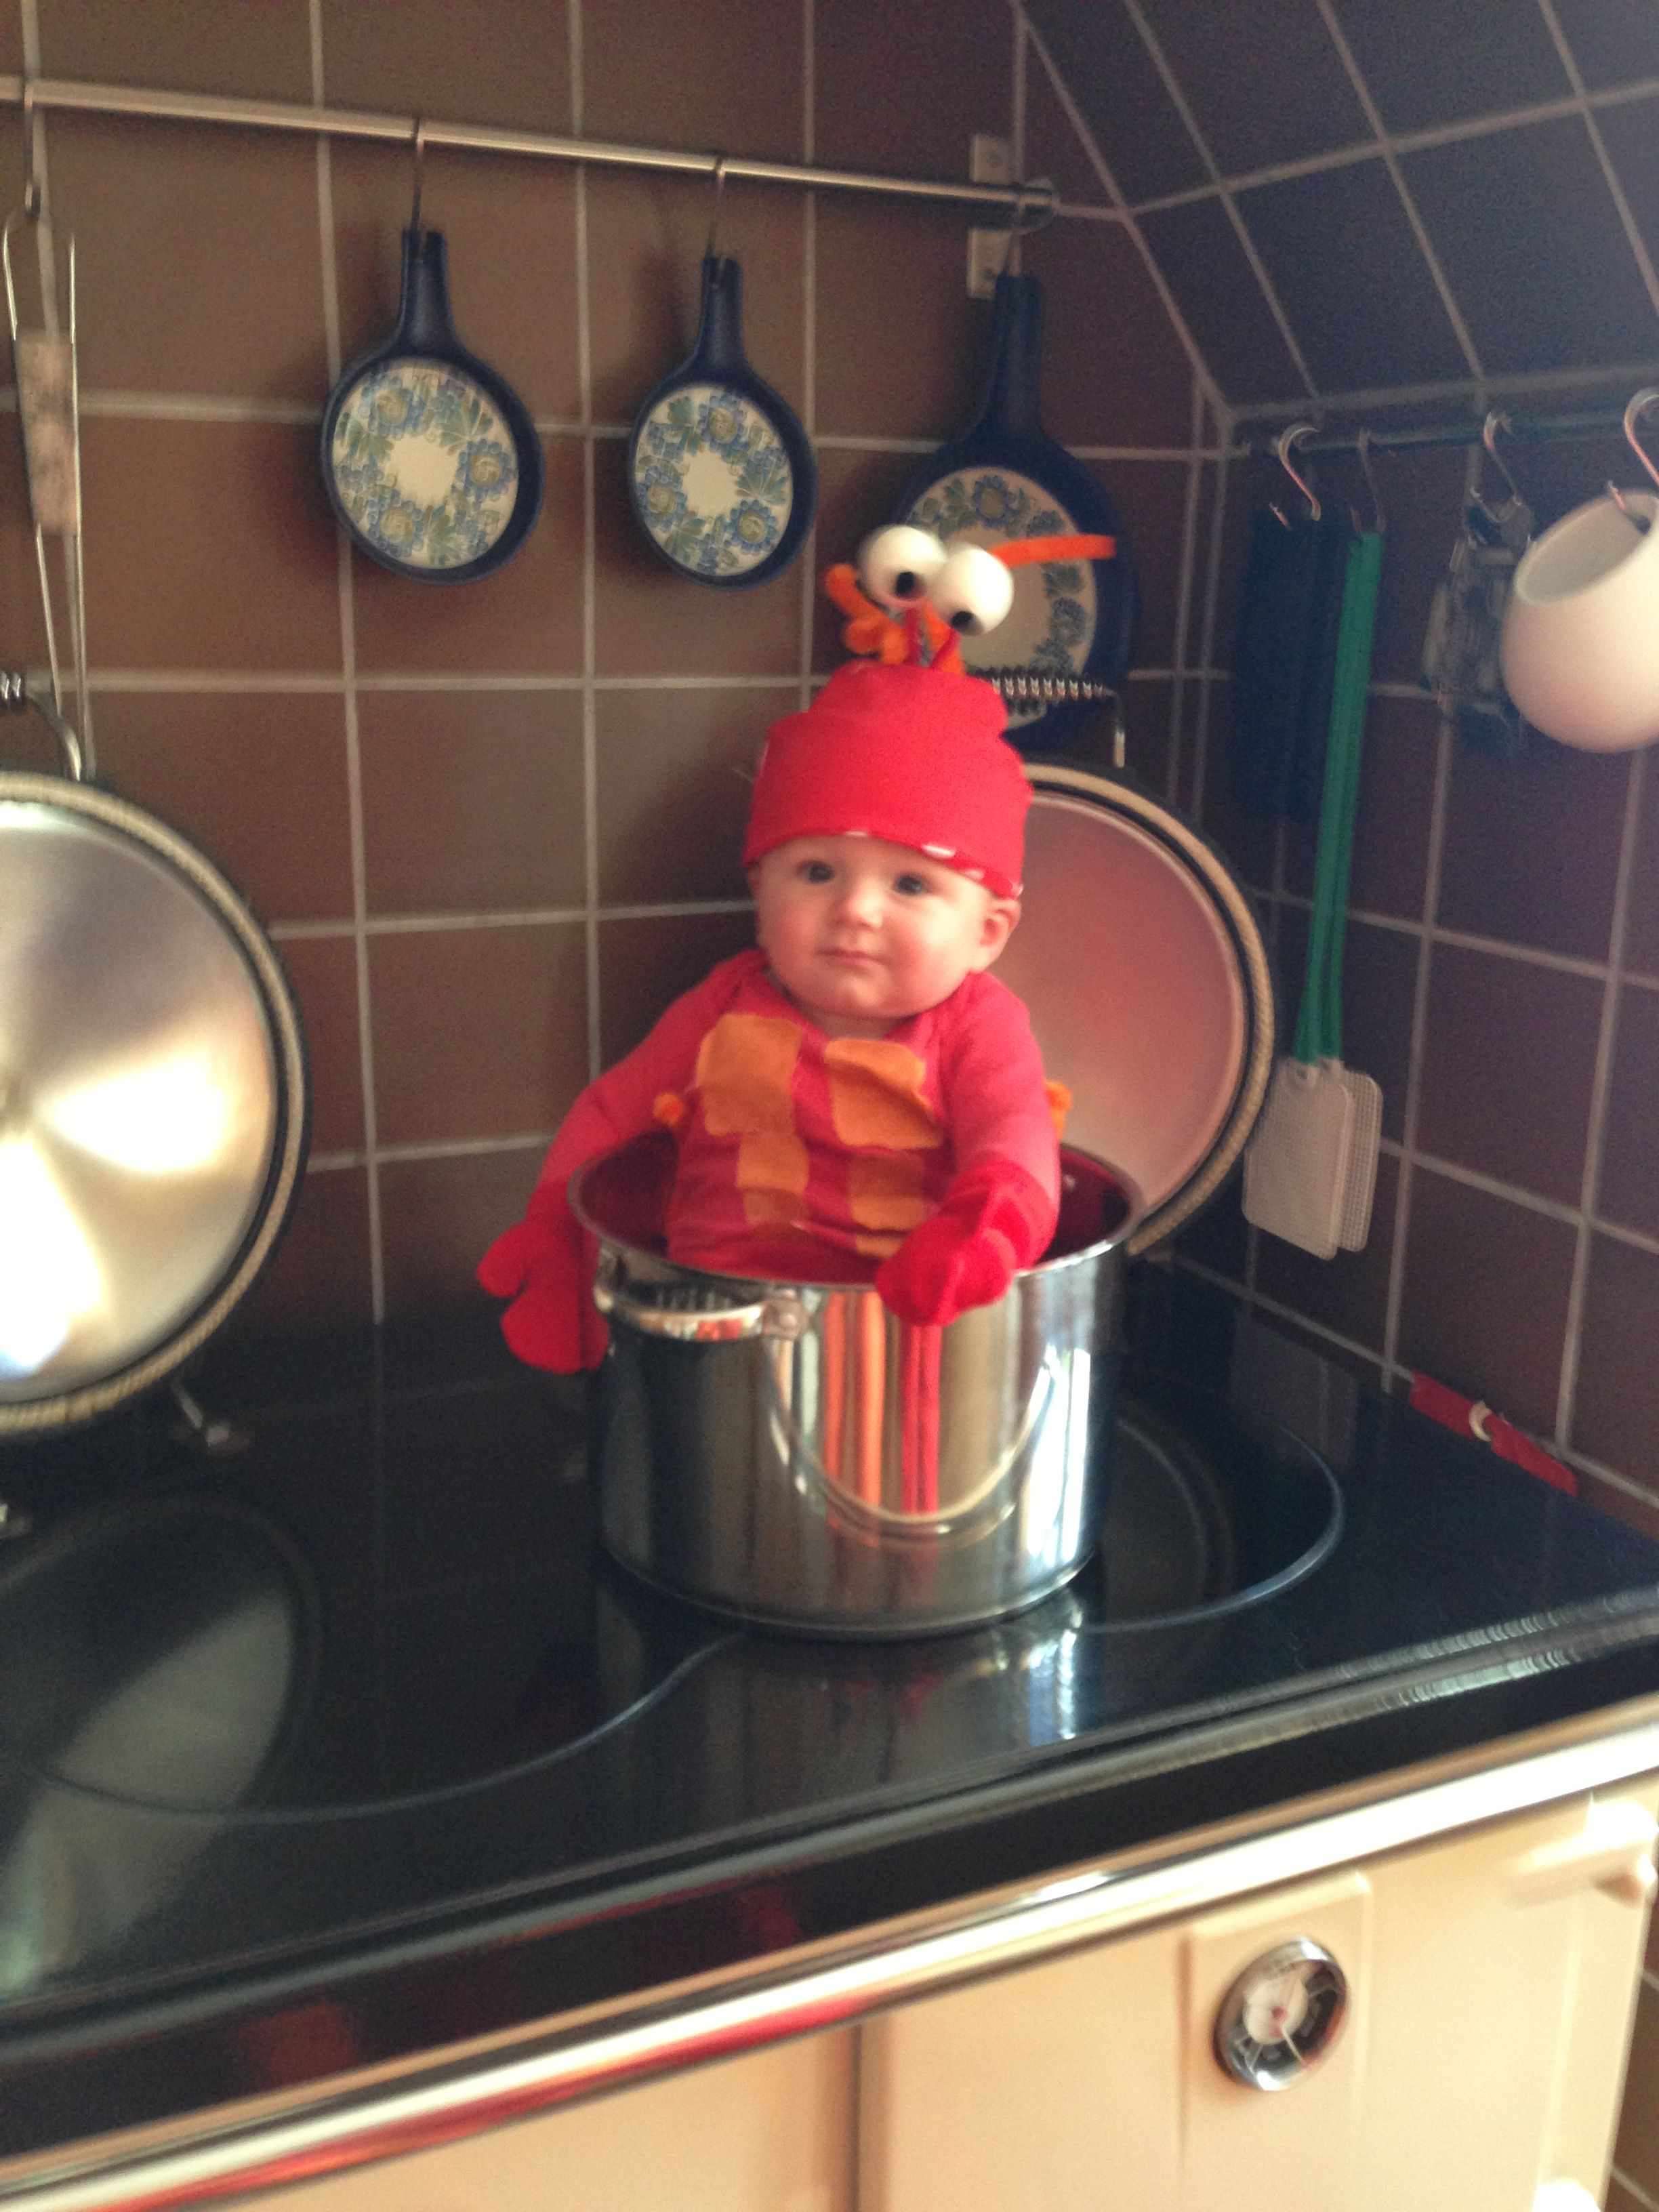 Baby lobster costume fun homemade childrens costume outfit baby lobster costume fun homemade childrens costume outfit fancy dress homemade by solutioingenieria Image collections